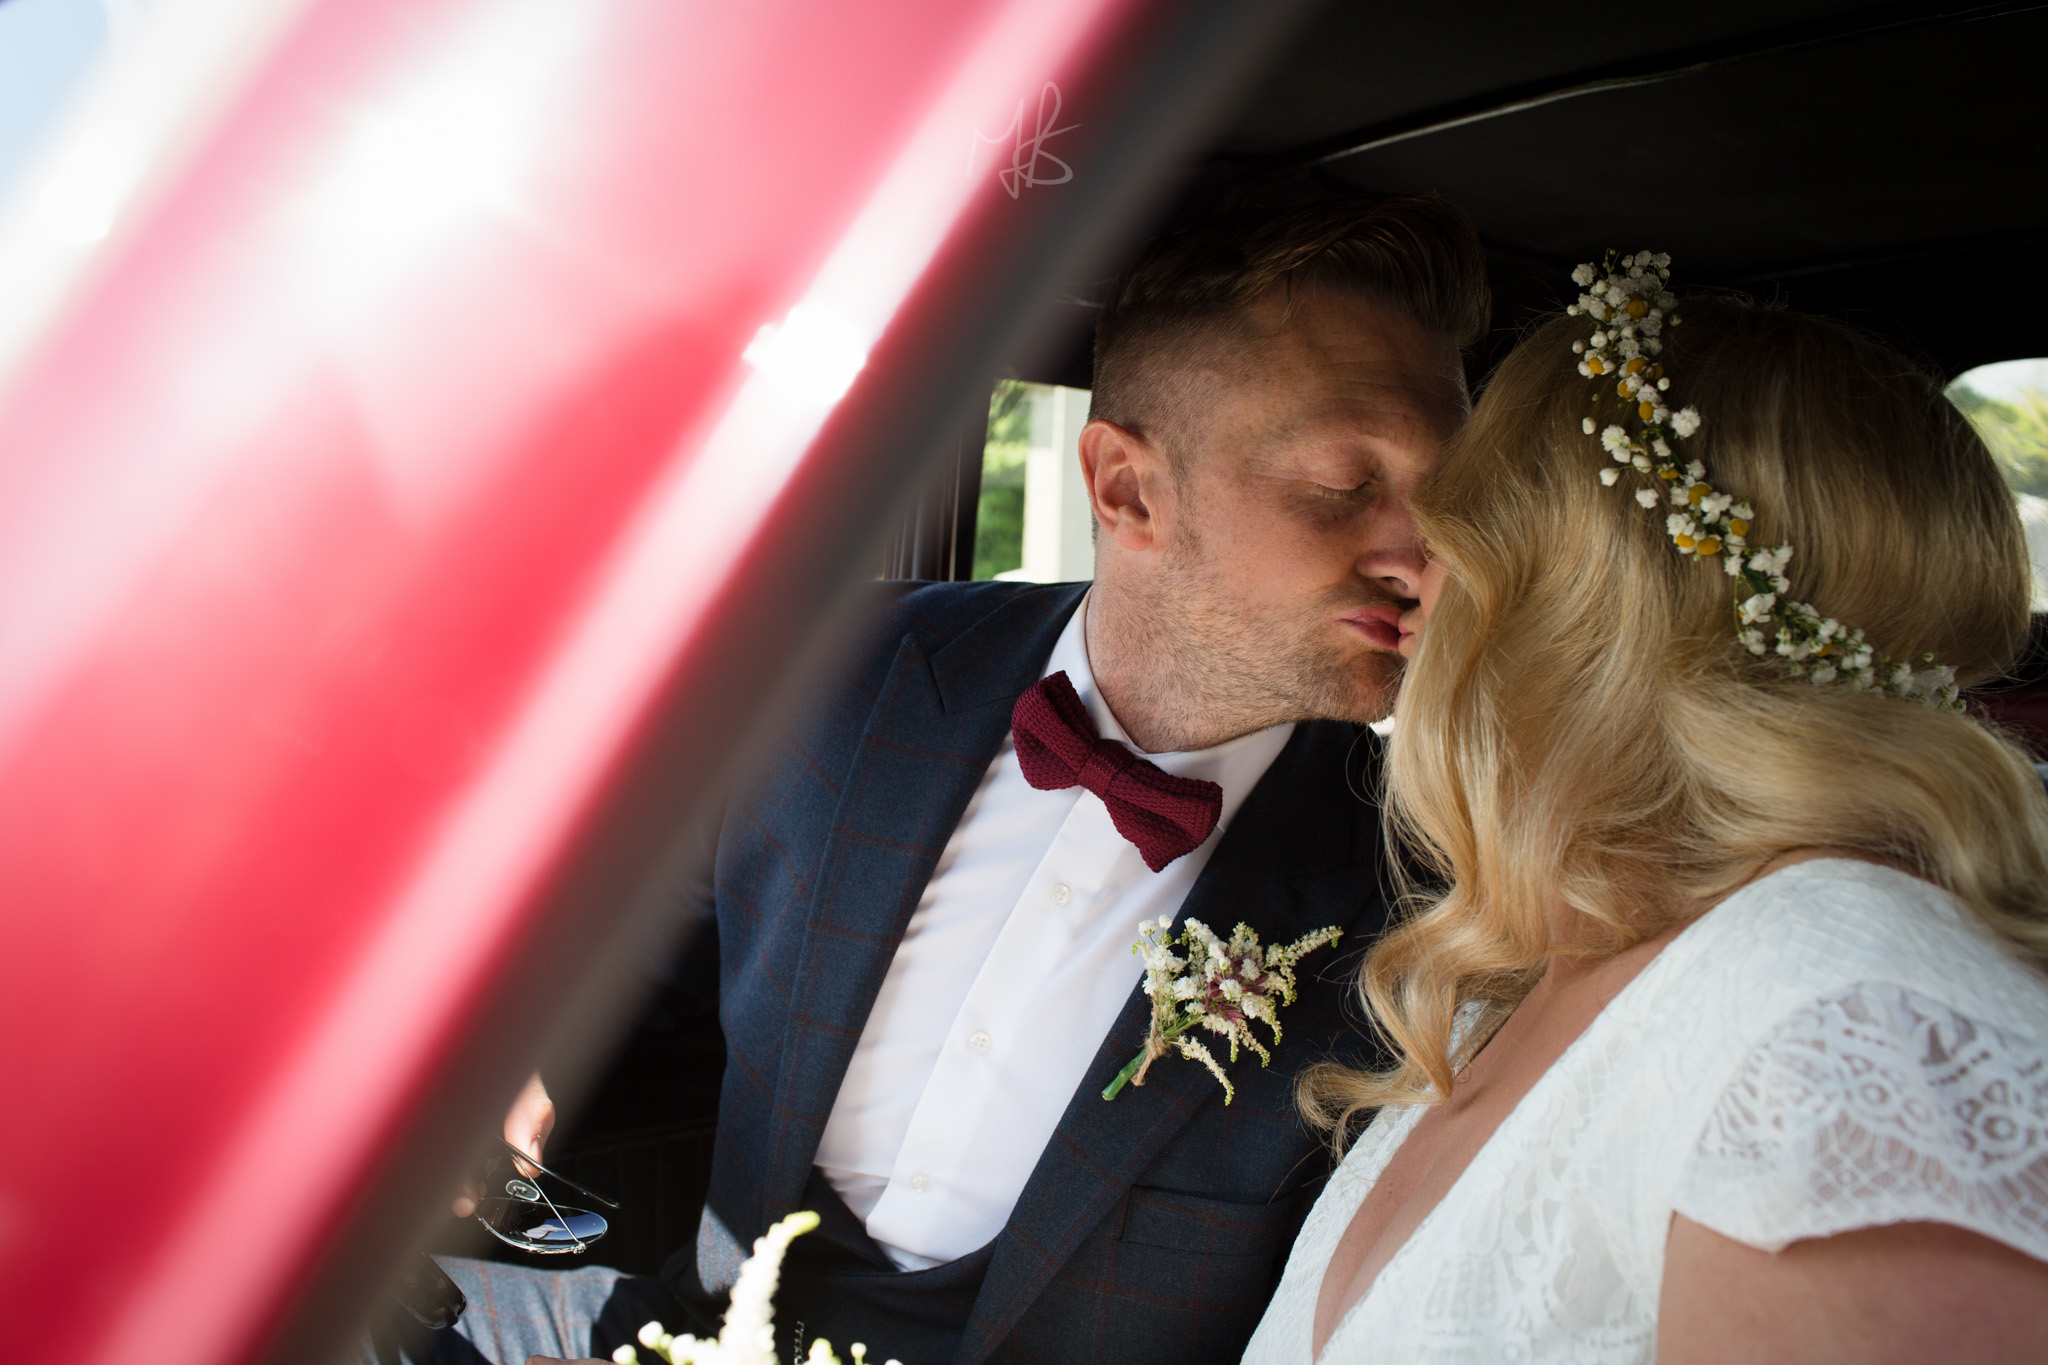 Northern_Ireland_Wedding-Photographer-Mark-Barnes-Newry_wedding_Photography-Katie&Darren-36.jpg